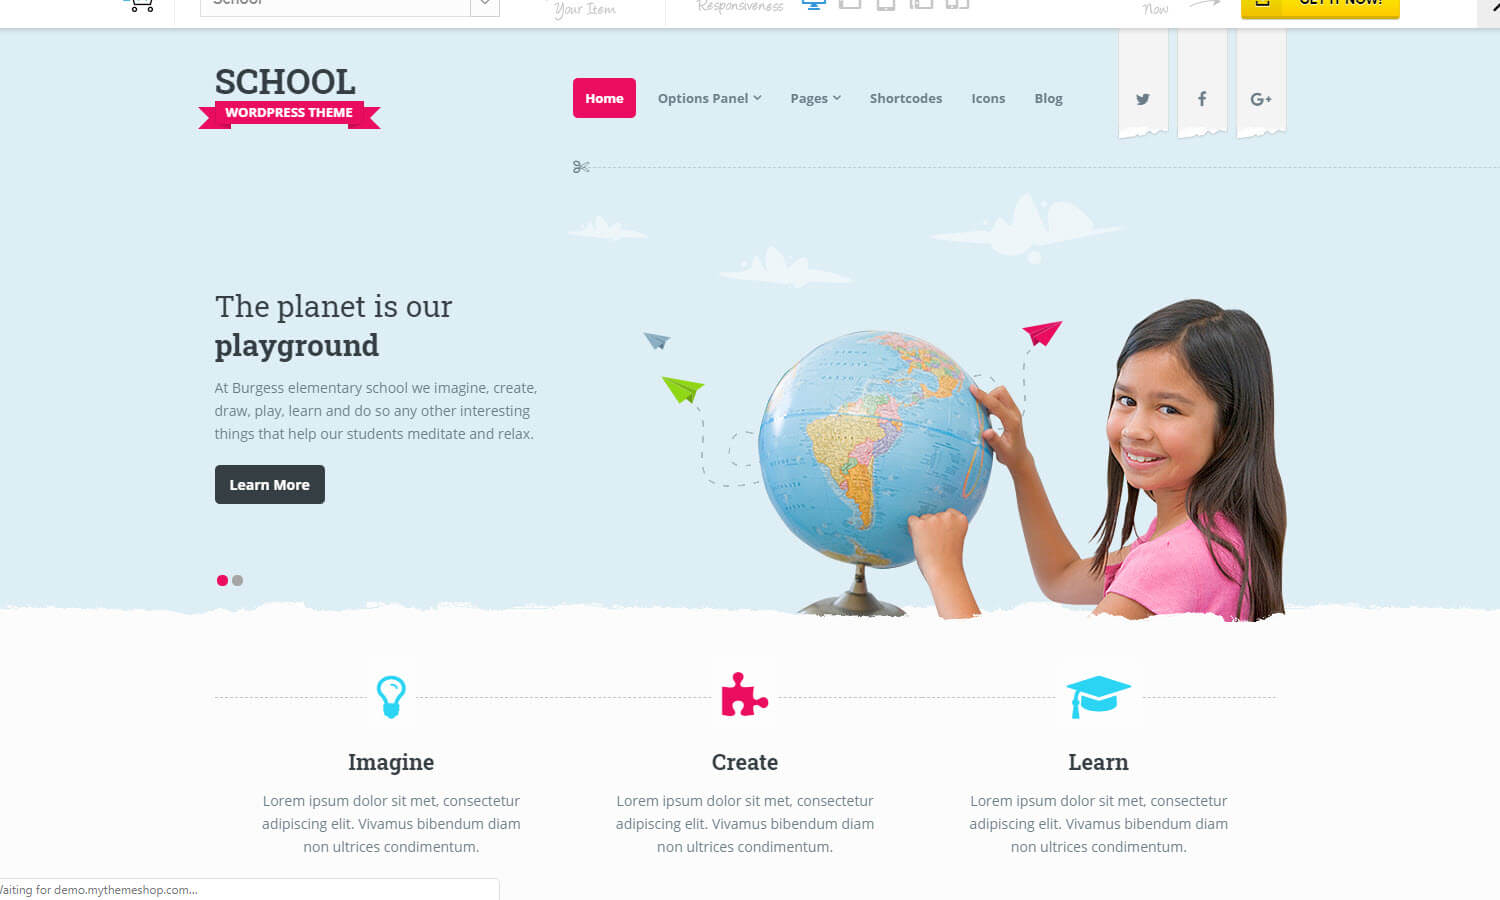 School screenshot